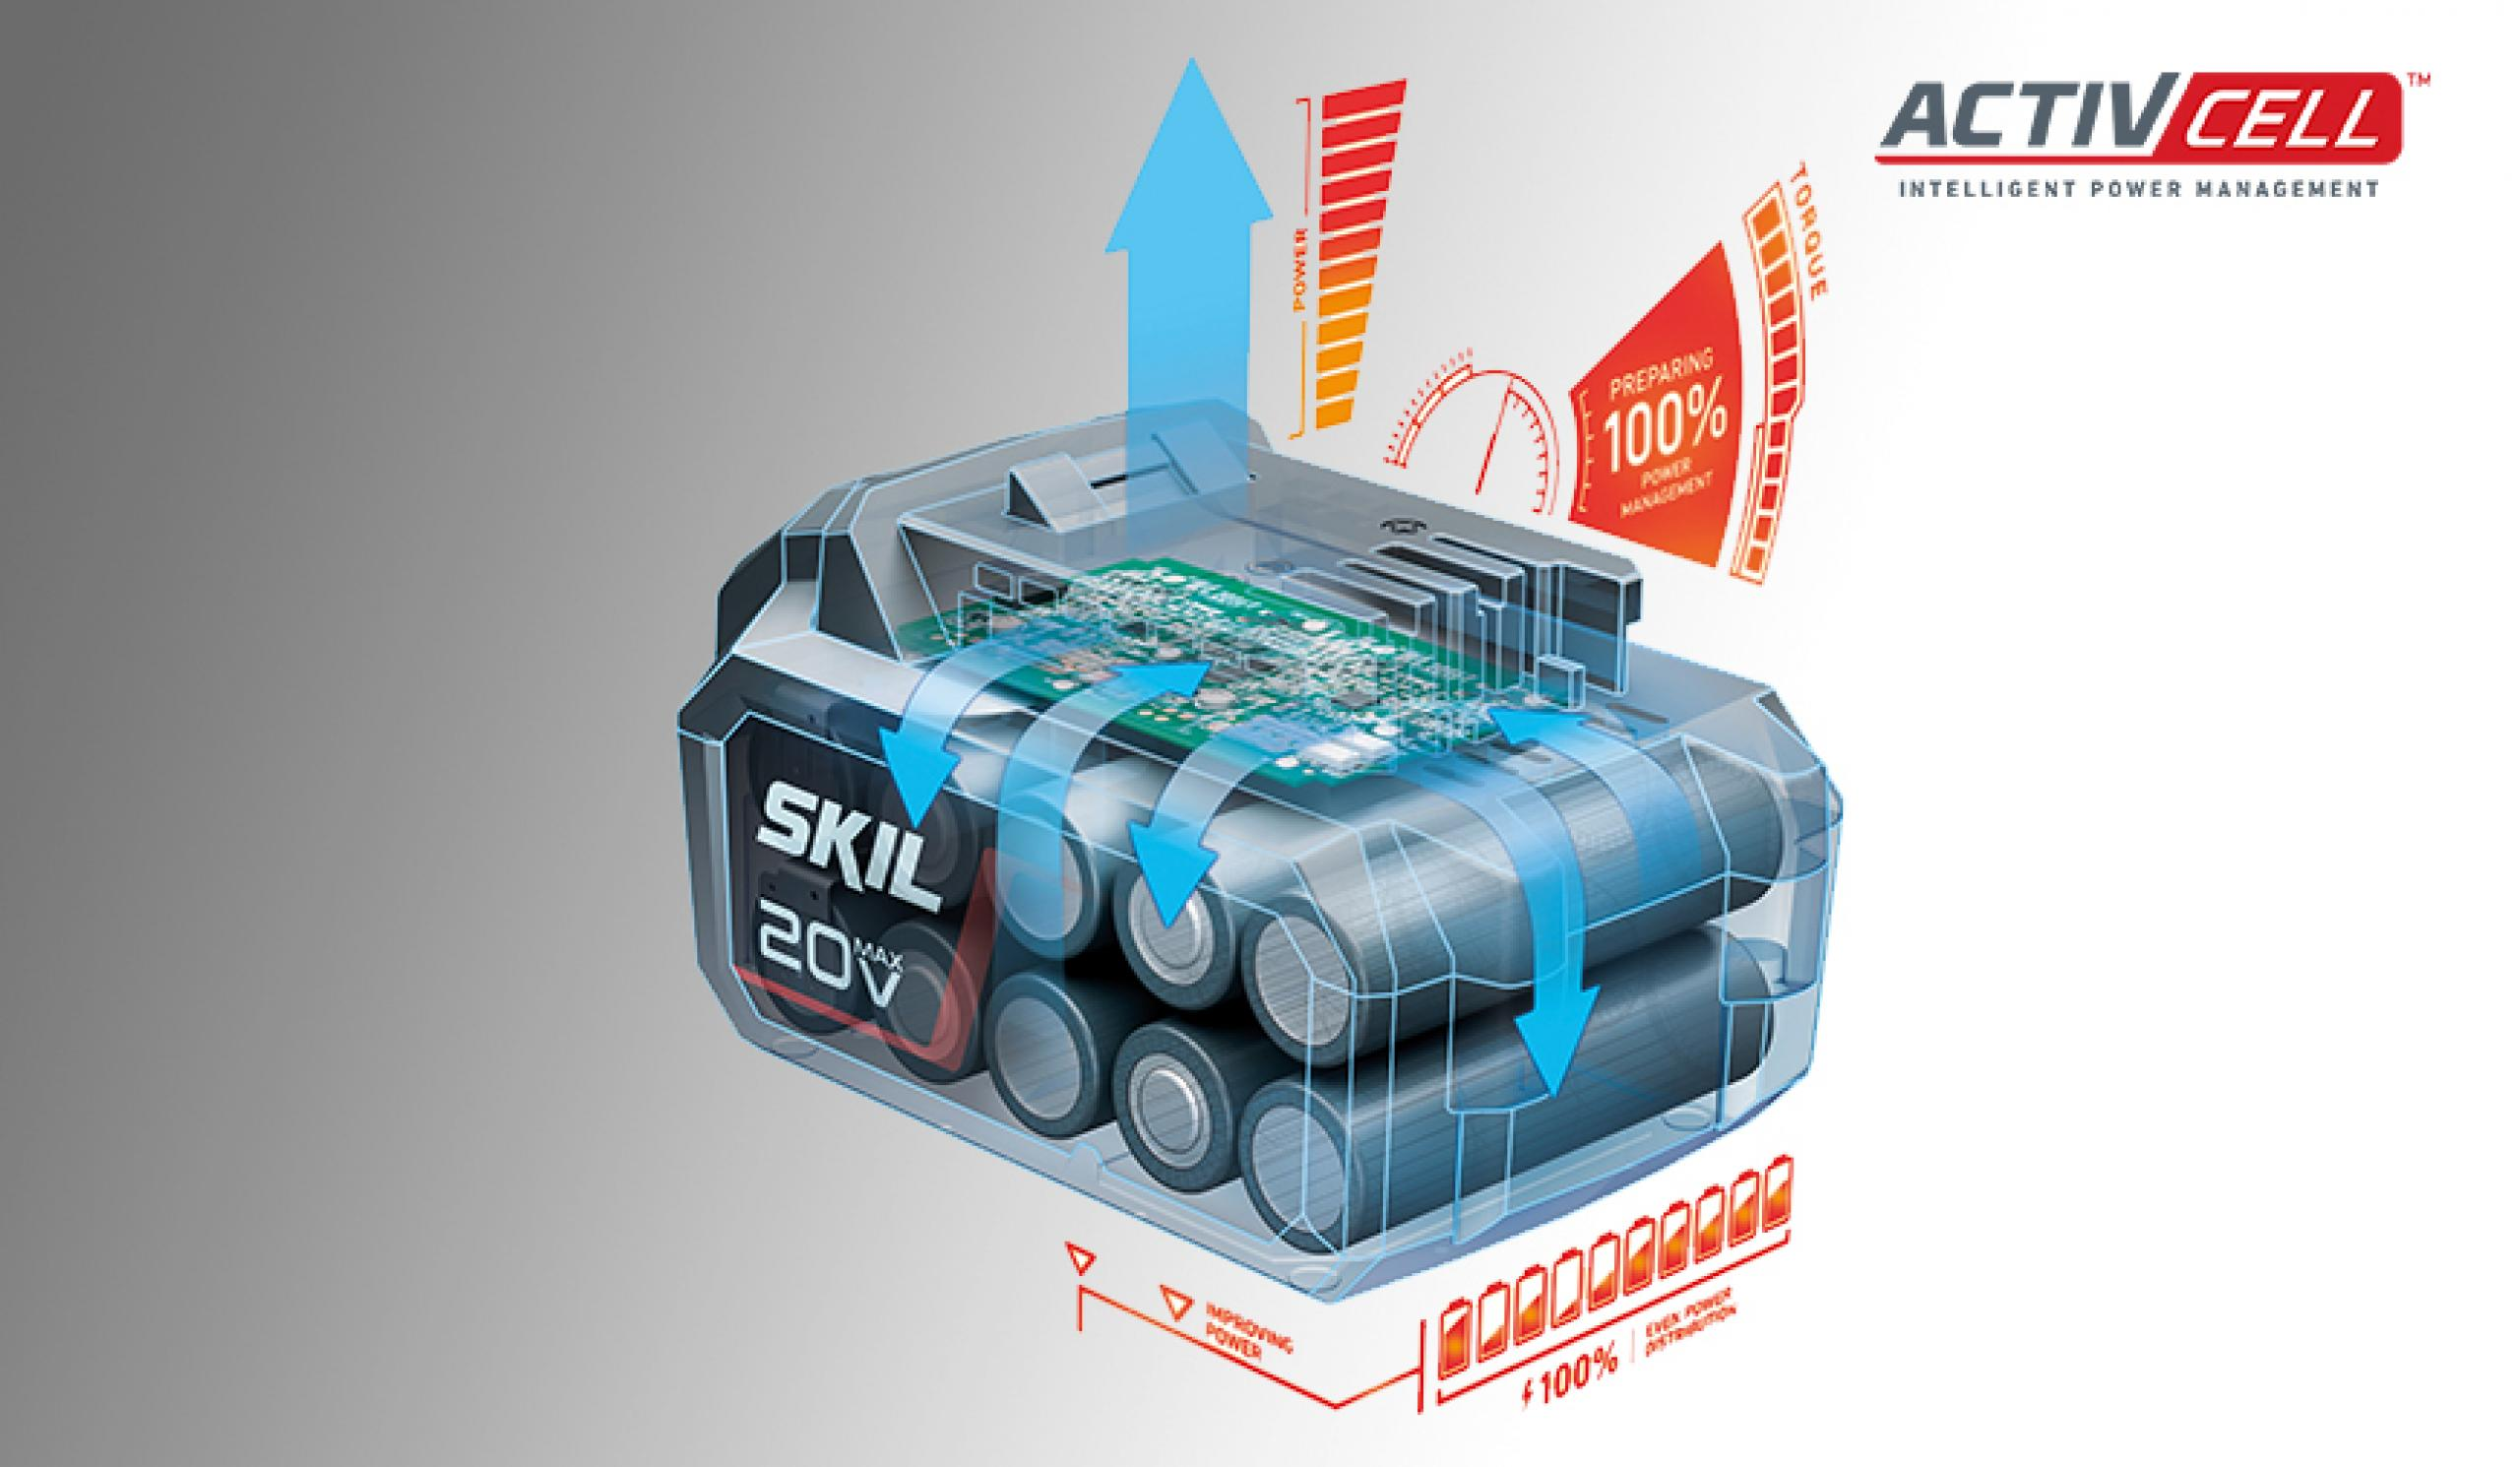 ActivCell™: Intelligent Power Management